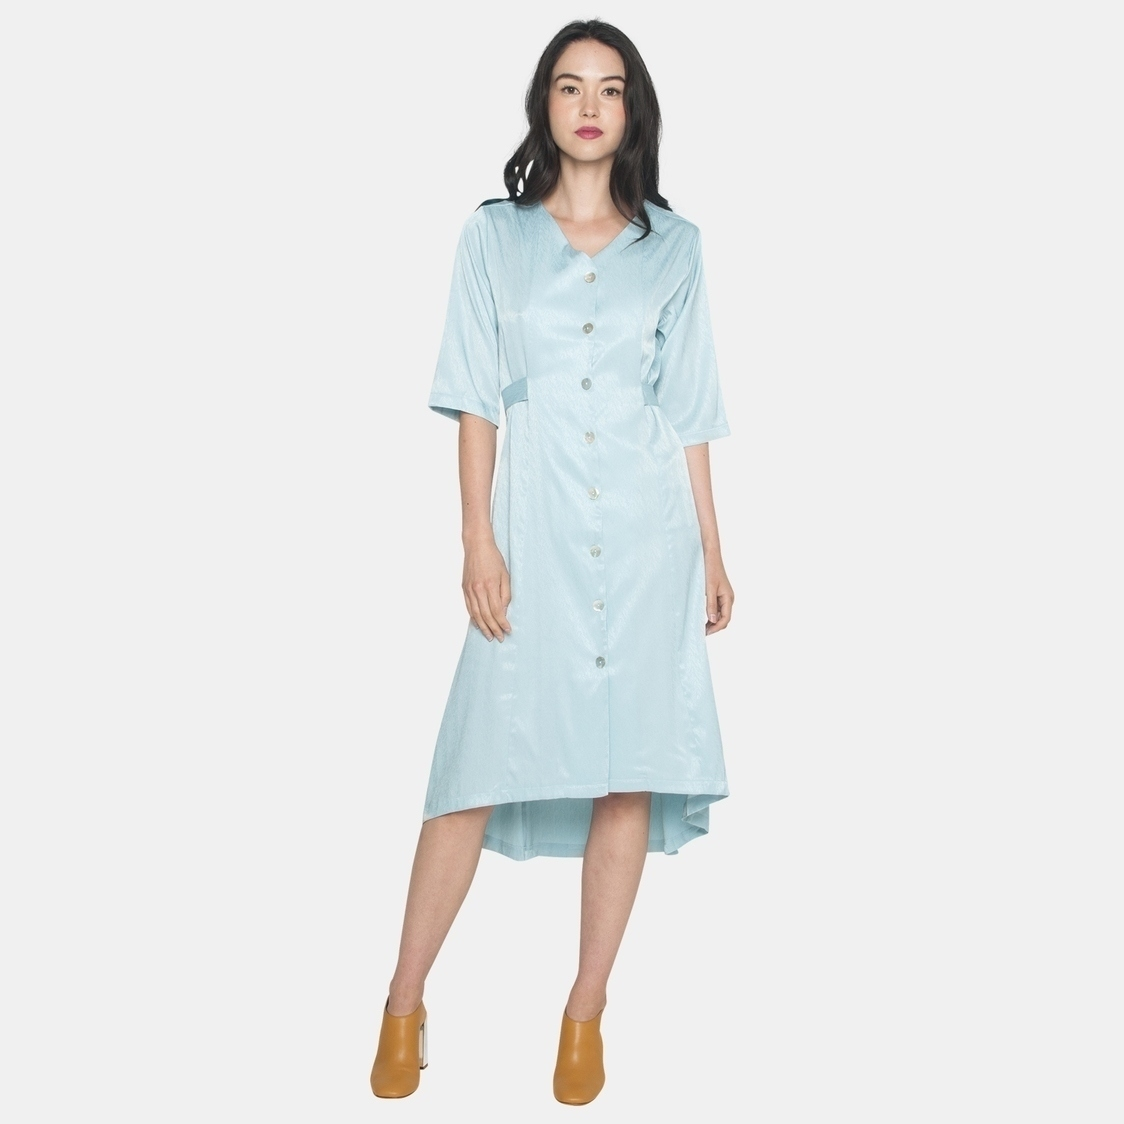 Ellysage Buttoned Dress with Back Tie in Mint